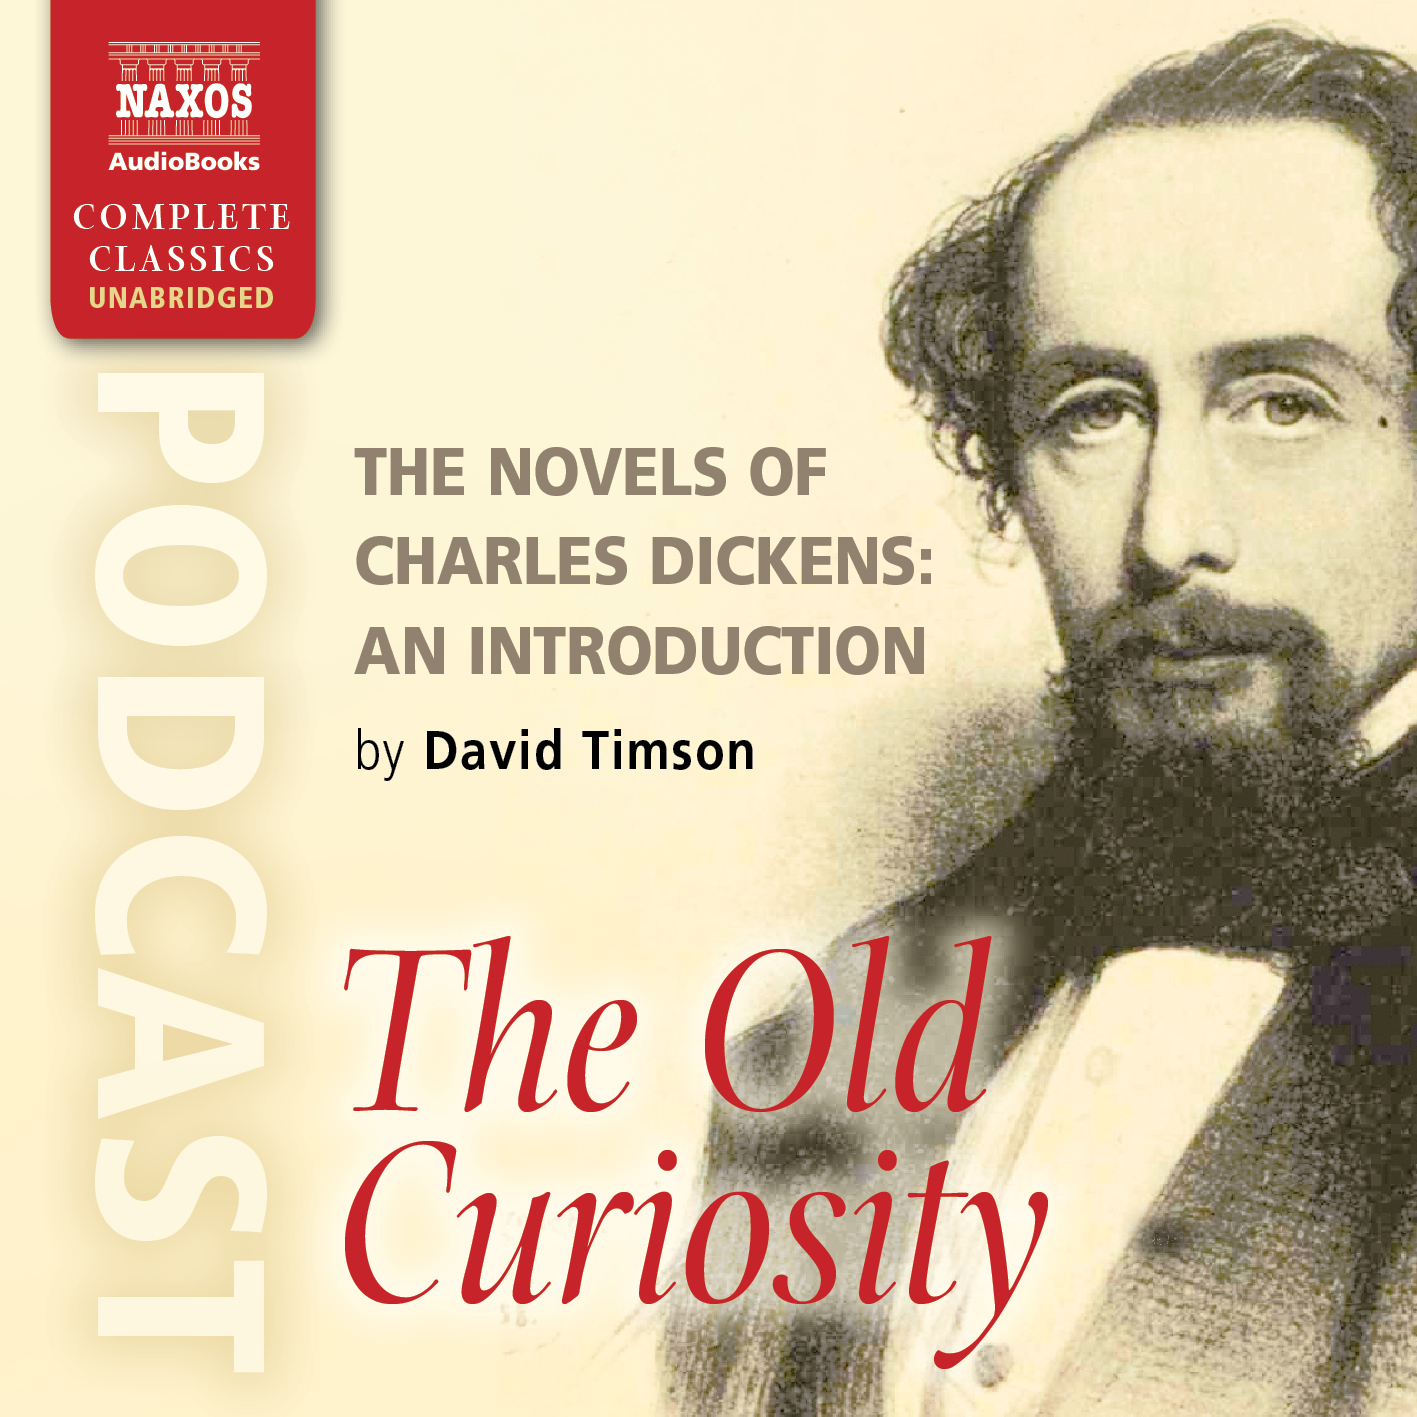 https://naxosaudiobooks.com/wp-content/uploads/2019/08/NA0396_The_Old_Curiosity_Shop_Podcast.jpg